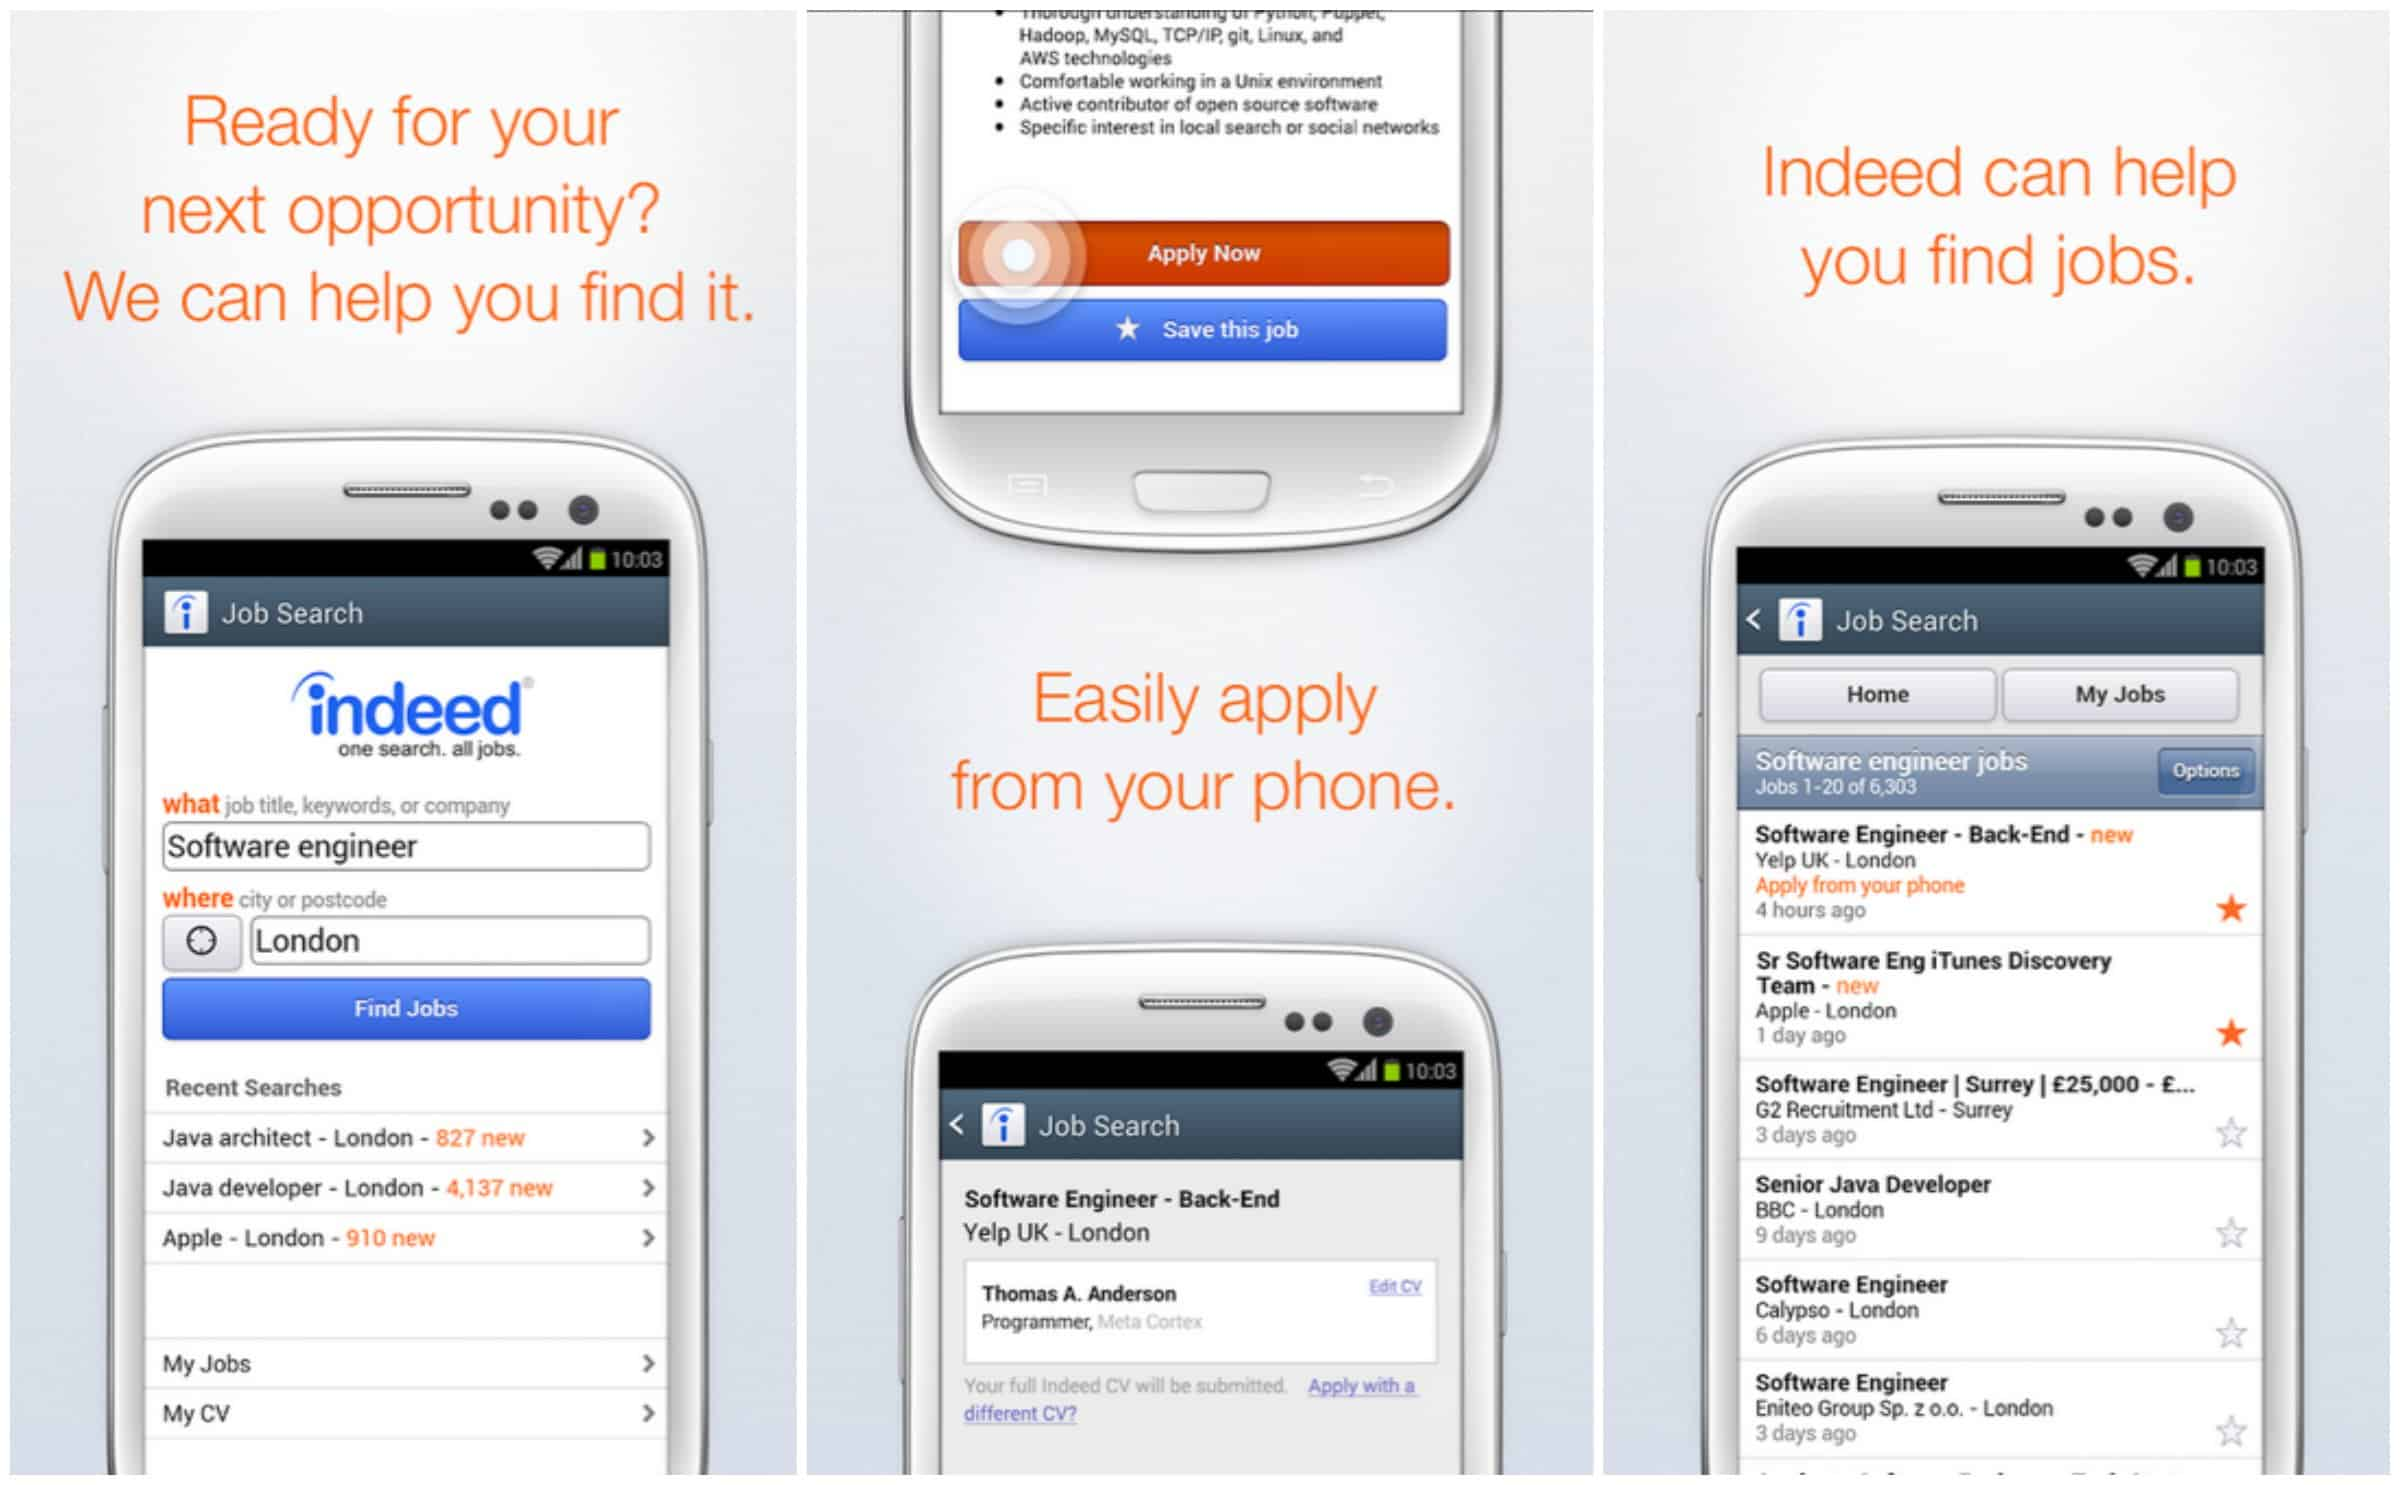 featured top job search apps for android com starting off today s list is job search this is an app from one of the more well known job search companies indeed and offers the ability to search from